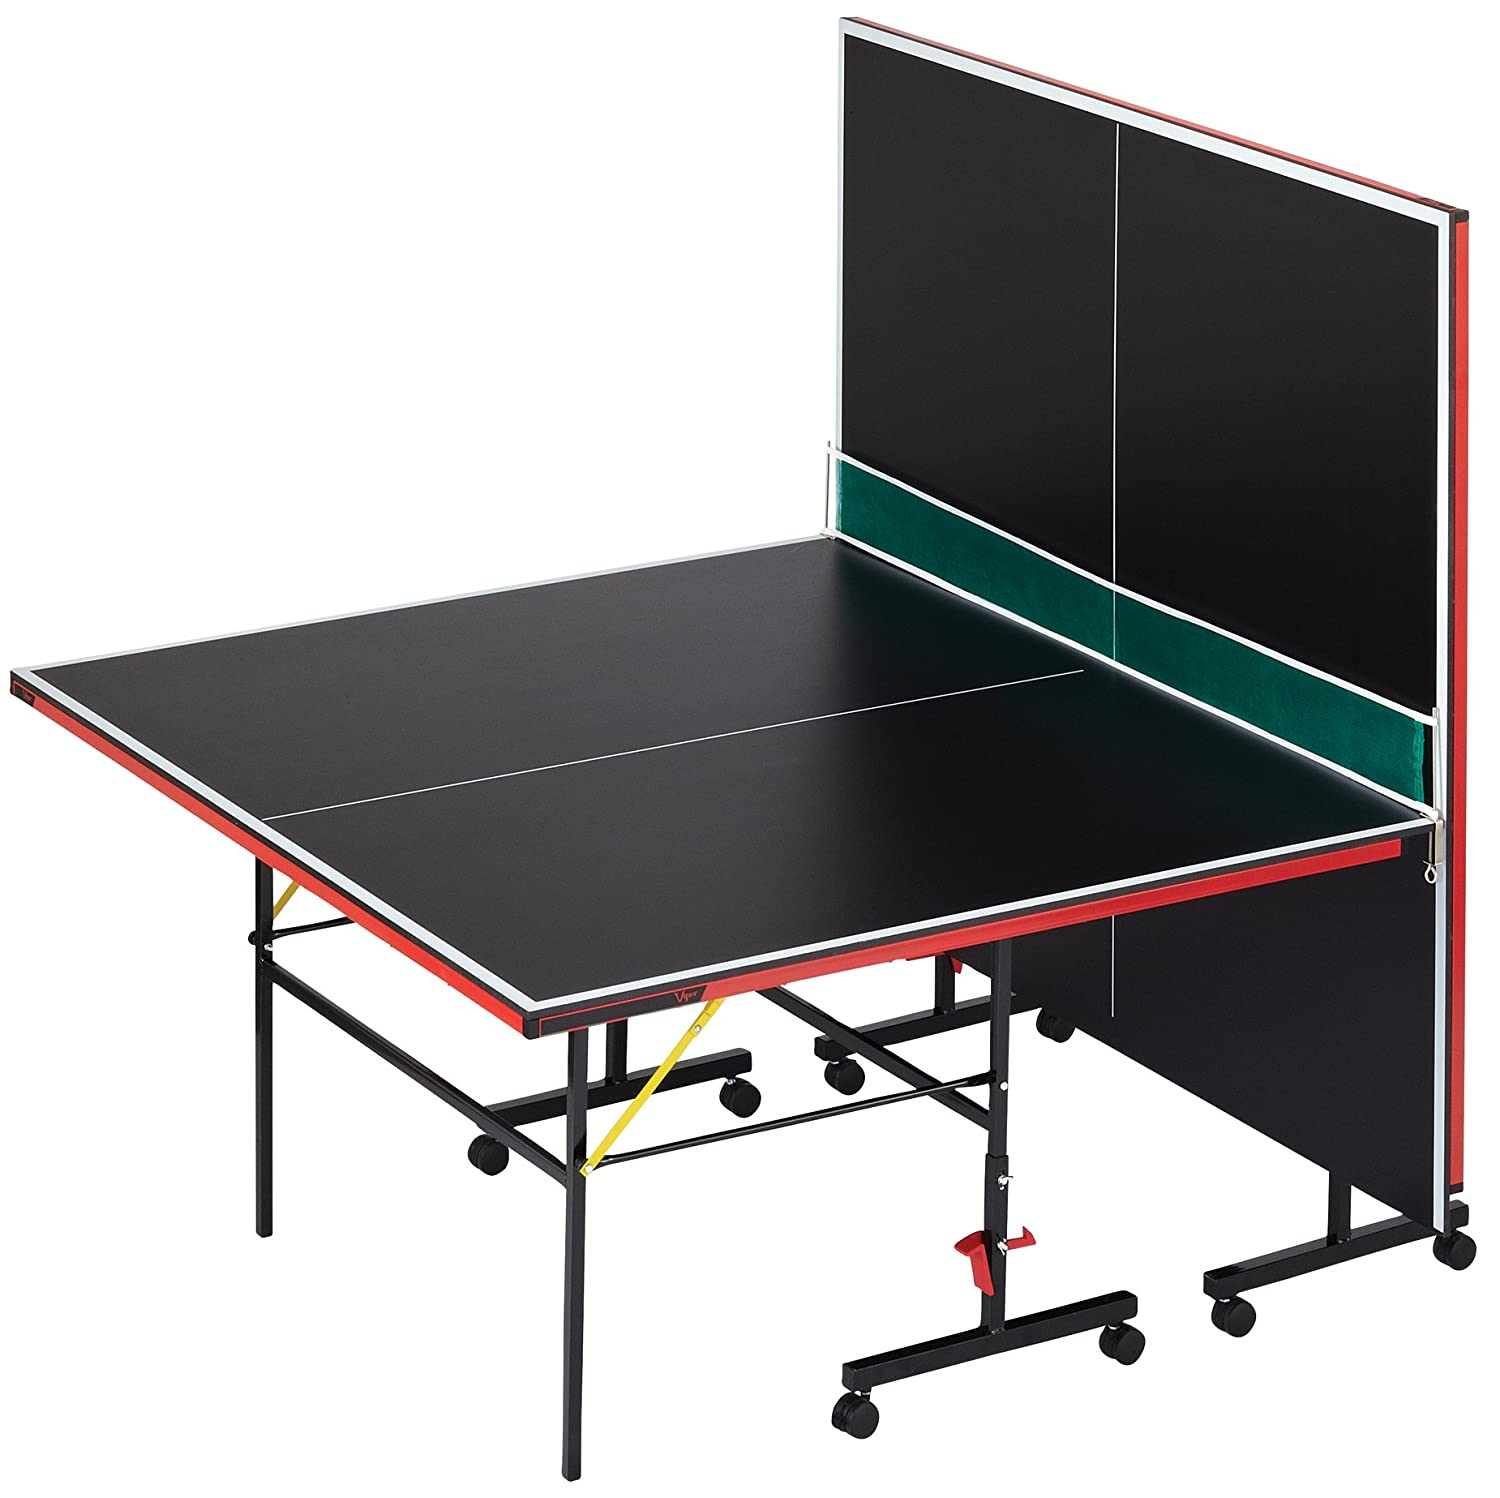 Viper Aurora Indoor Table Tennis Table Review